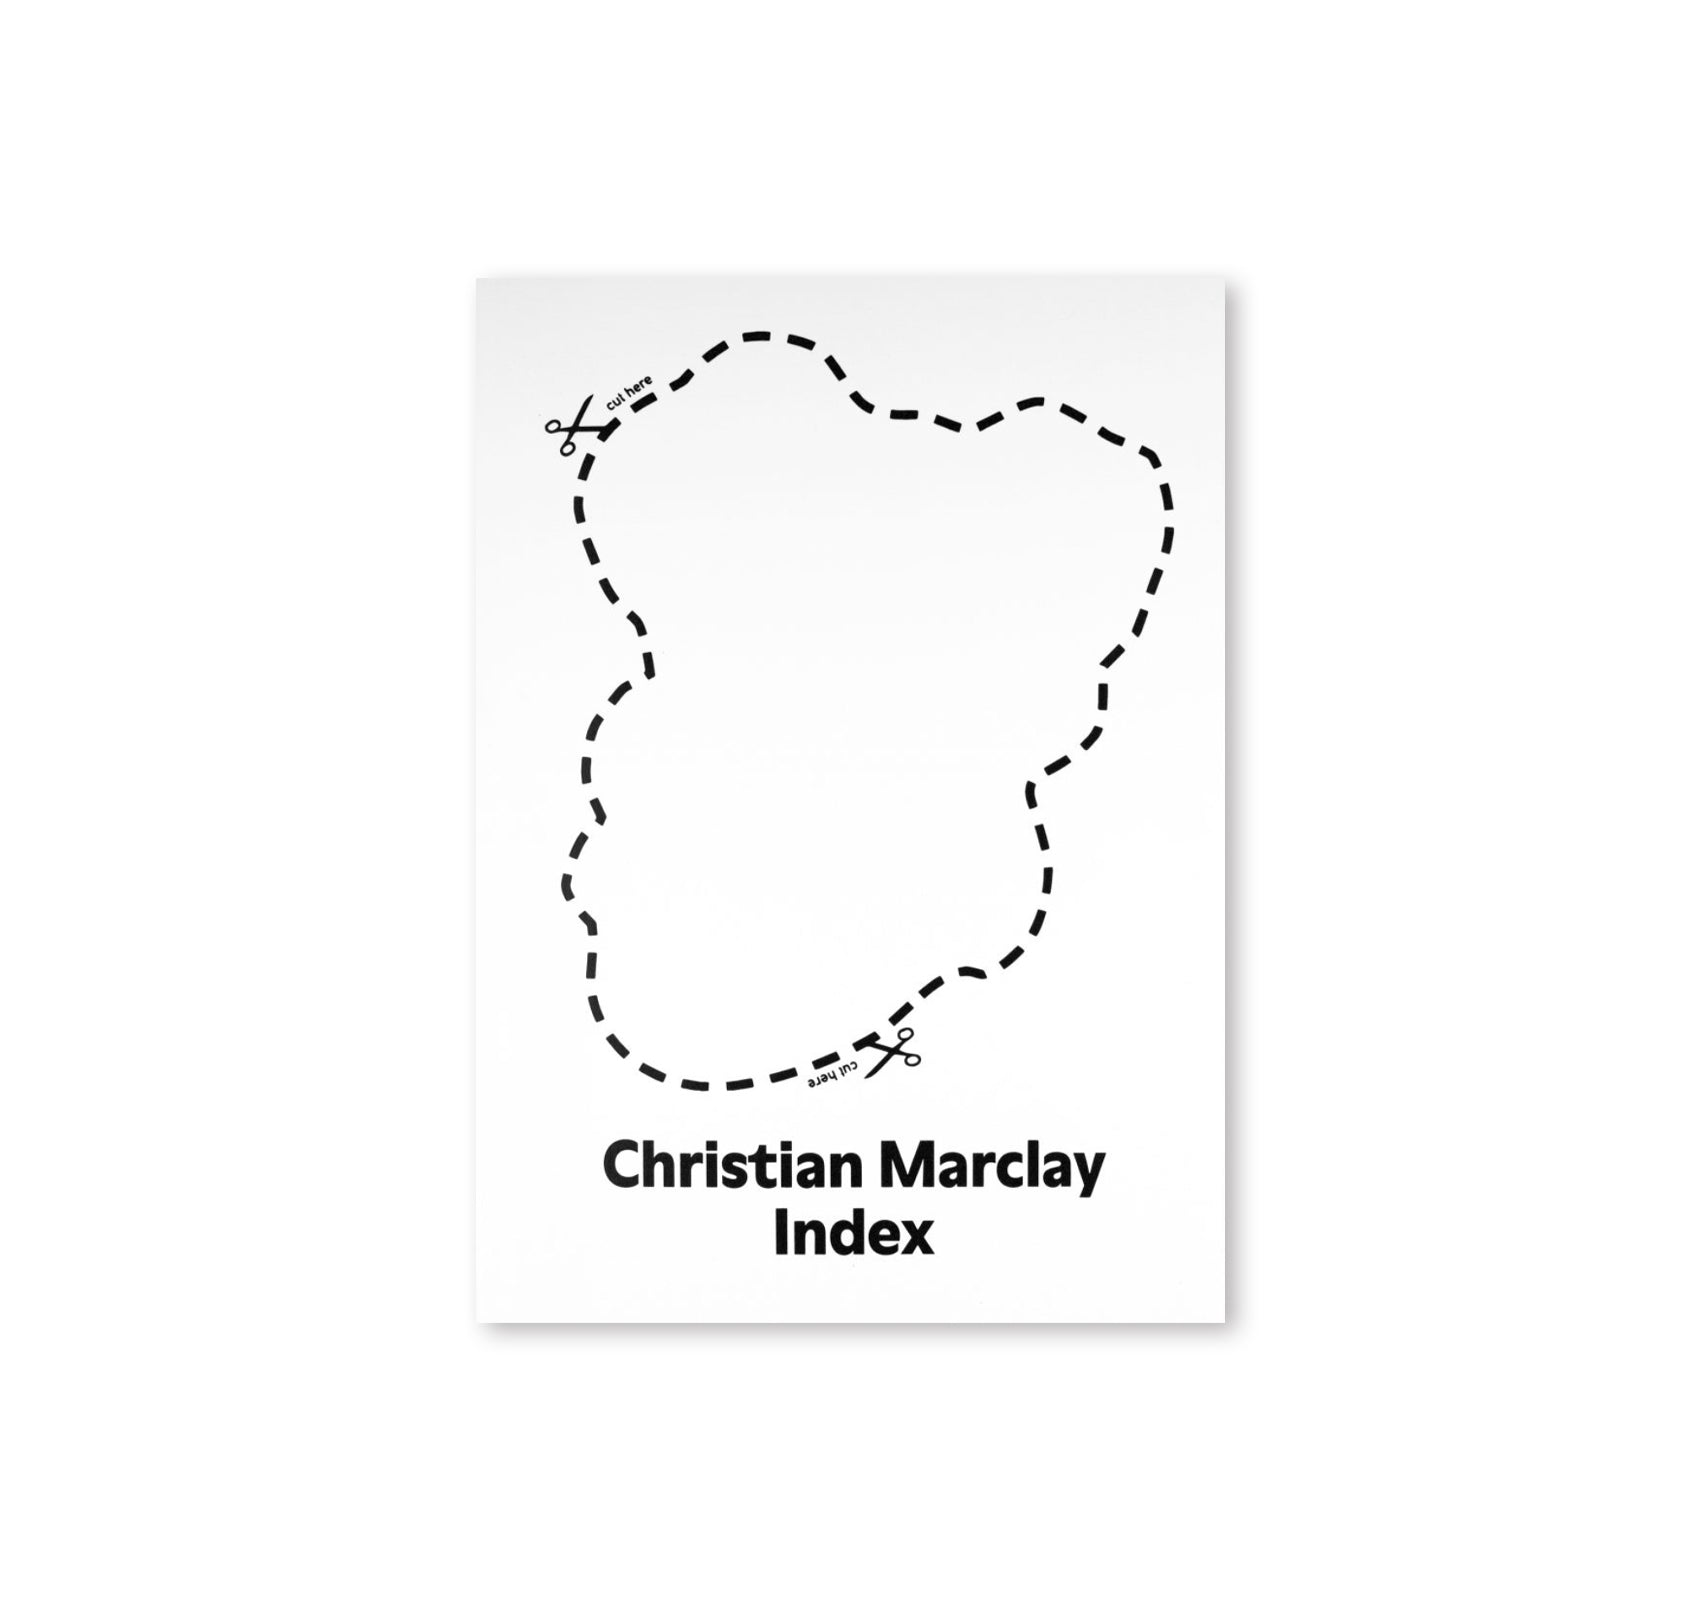 INDEX by Christian Marclay